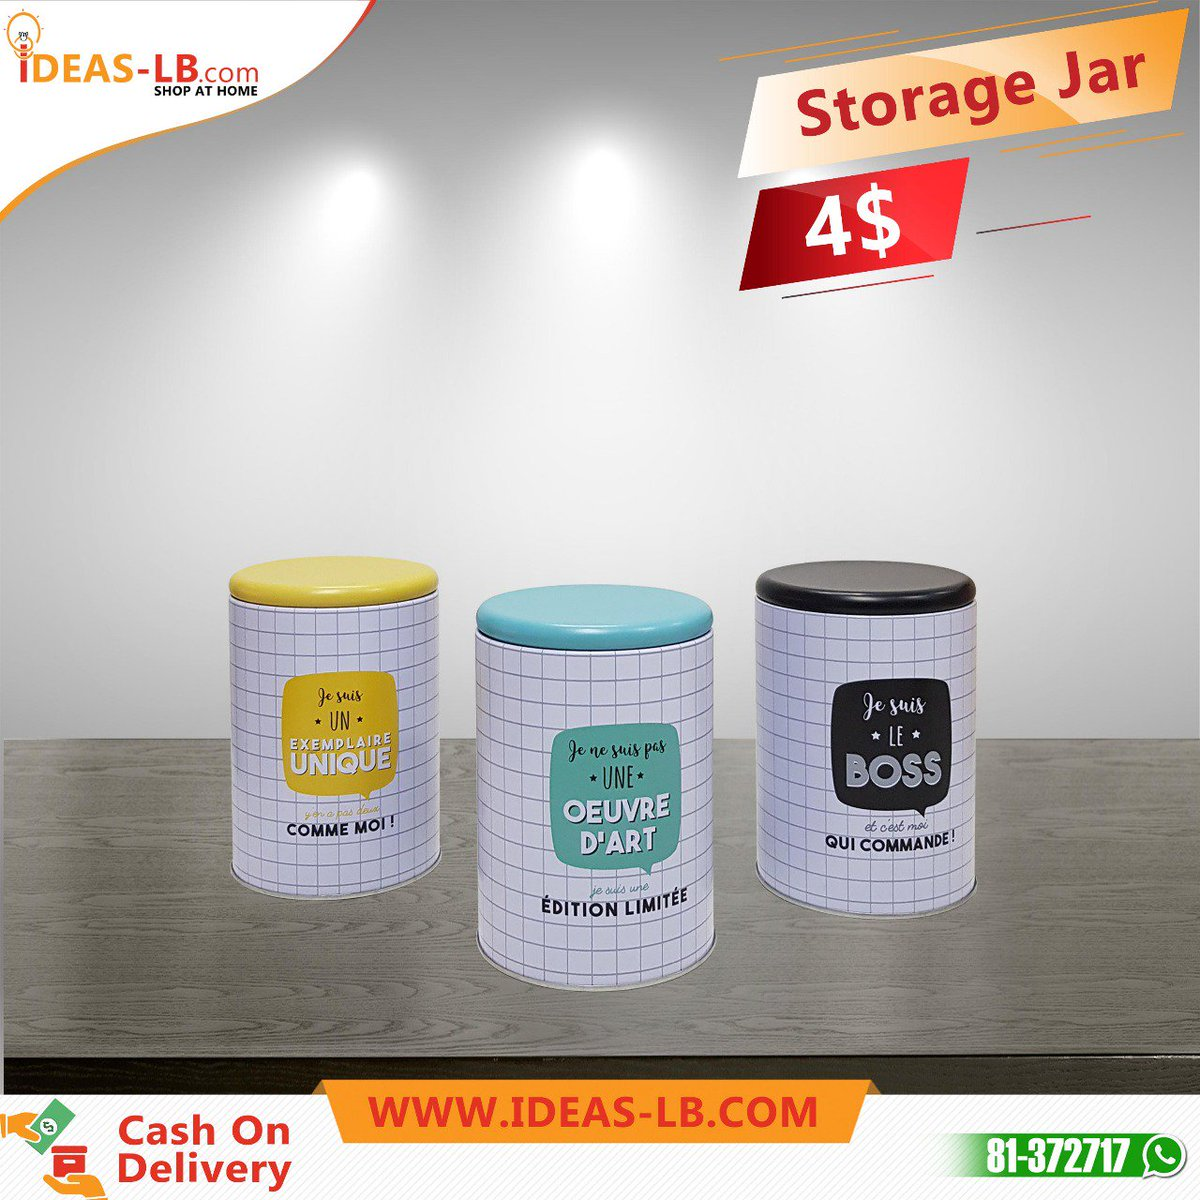 a1a2ad08e19 Buy high quality storage boxes and jars at http   ideas-lb.com  glassjars   onlineshopping  storagejars  shopfromhome  fresh  durable  kitchenitems   Storage ...